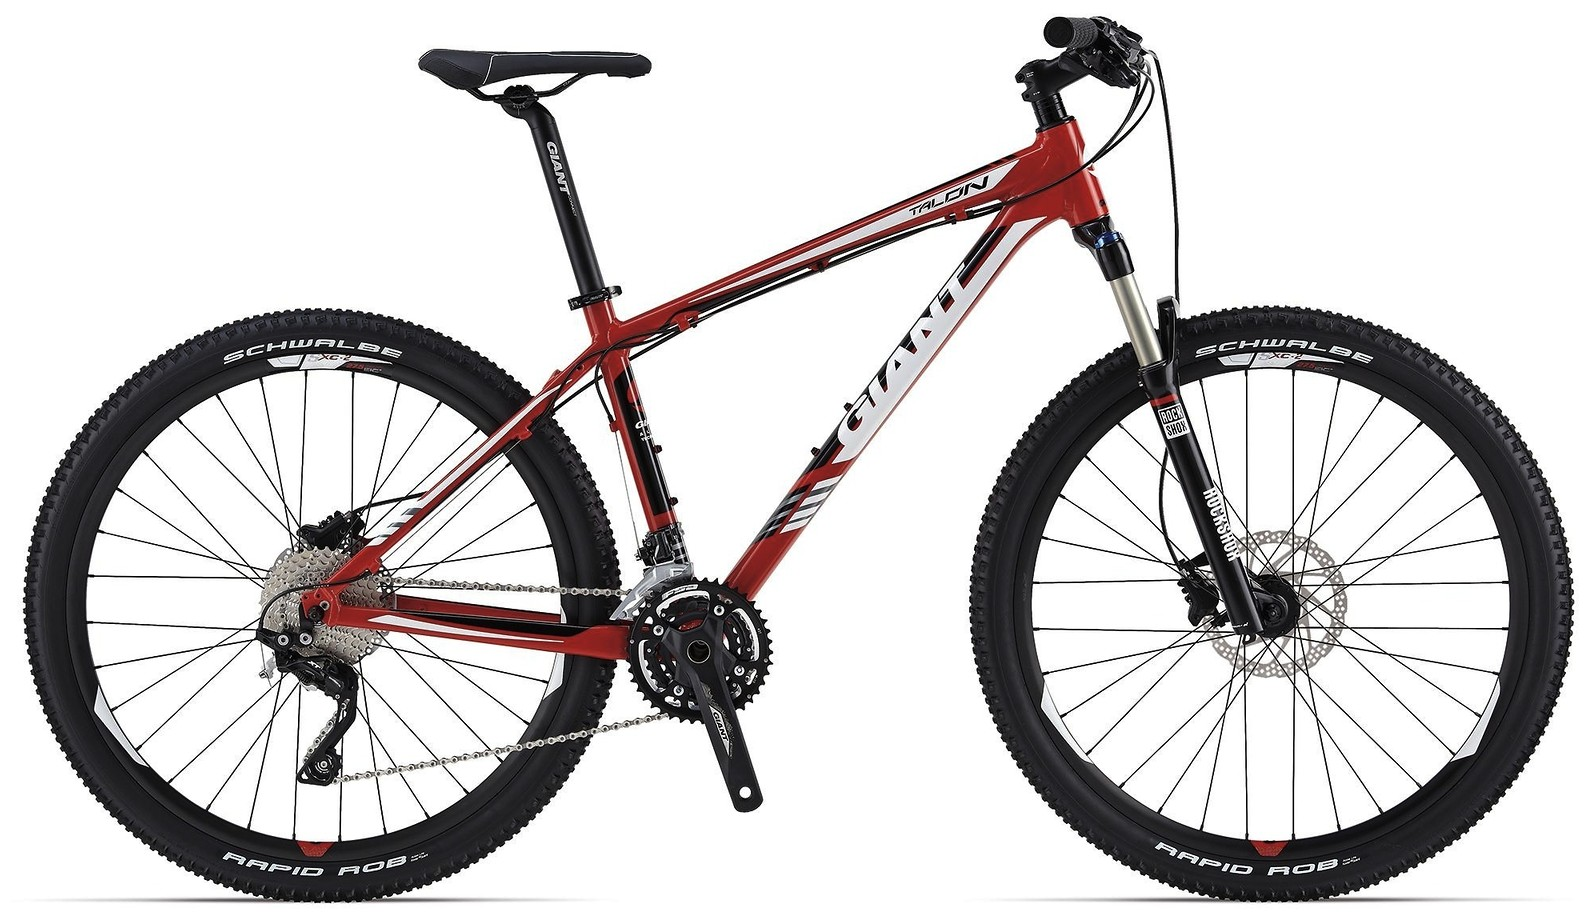 2014 Giant Talon 27.5 1 Bike Talon_27.5_1_red